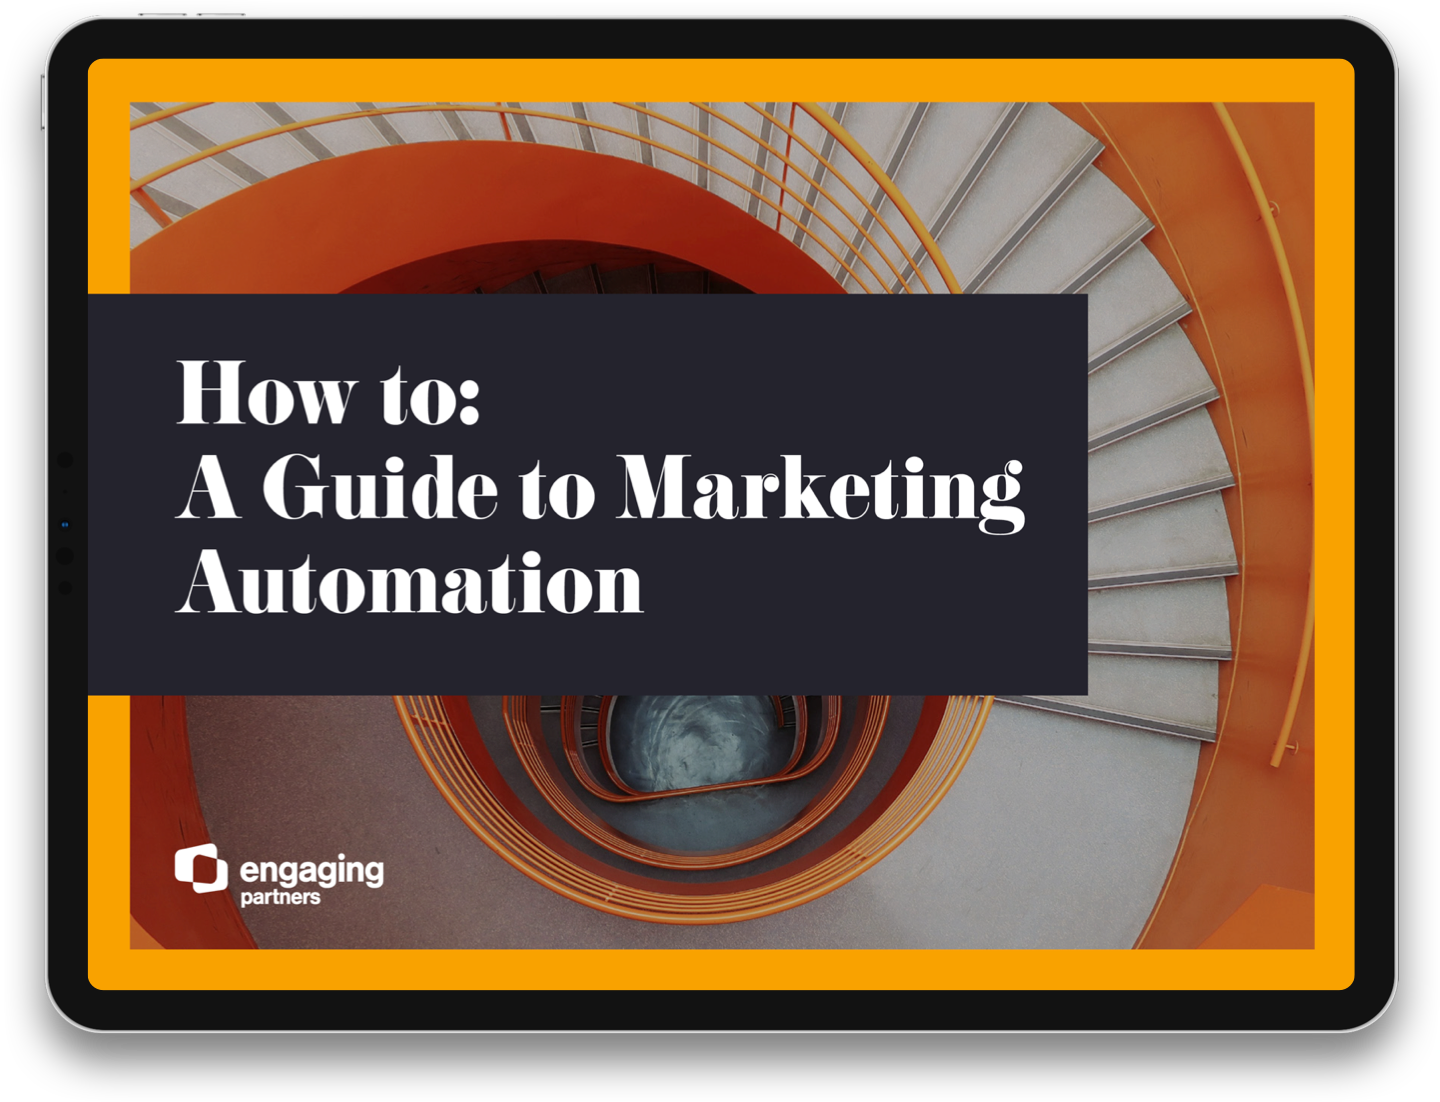 Mockup-marketing-automation-2